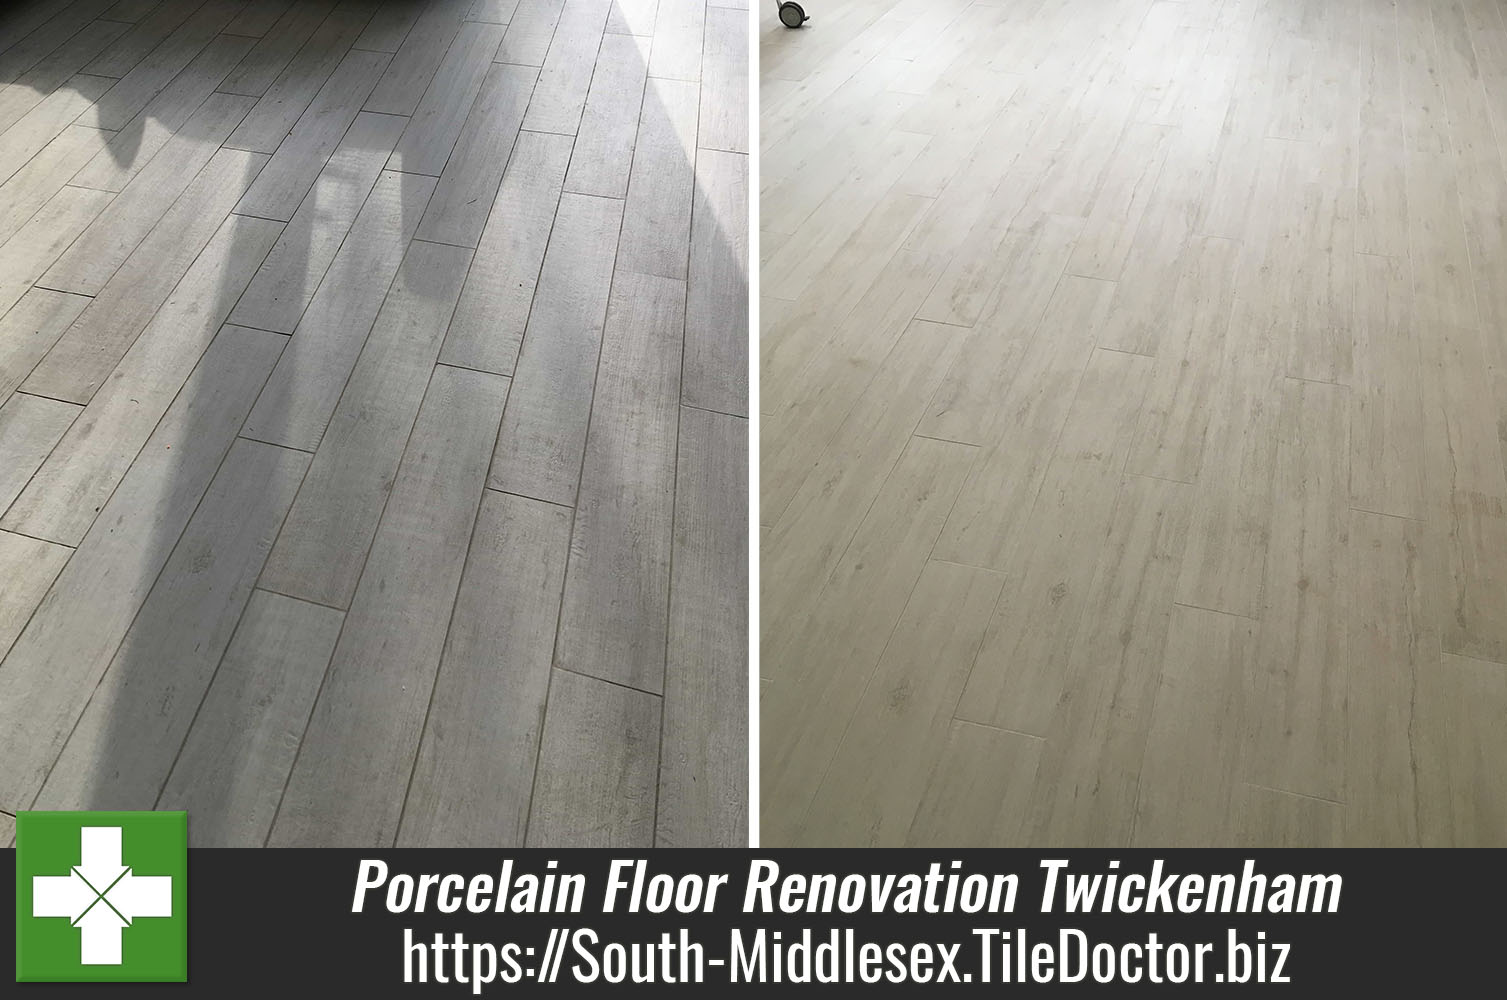 Porcelain Floor Before After Renovation Twickenham